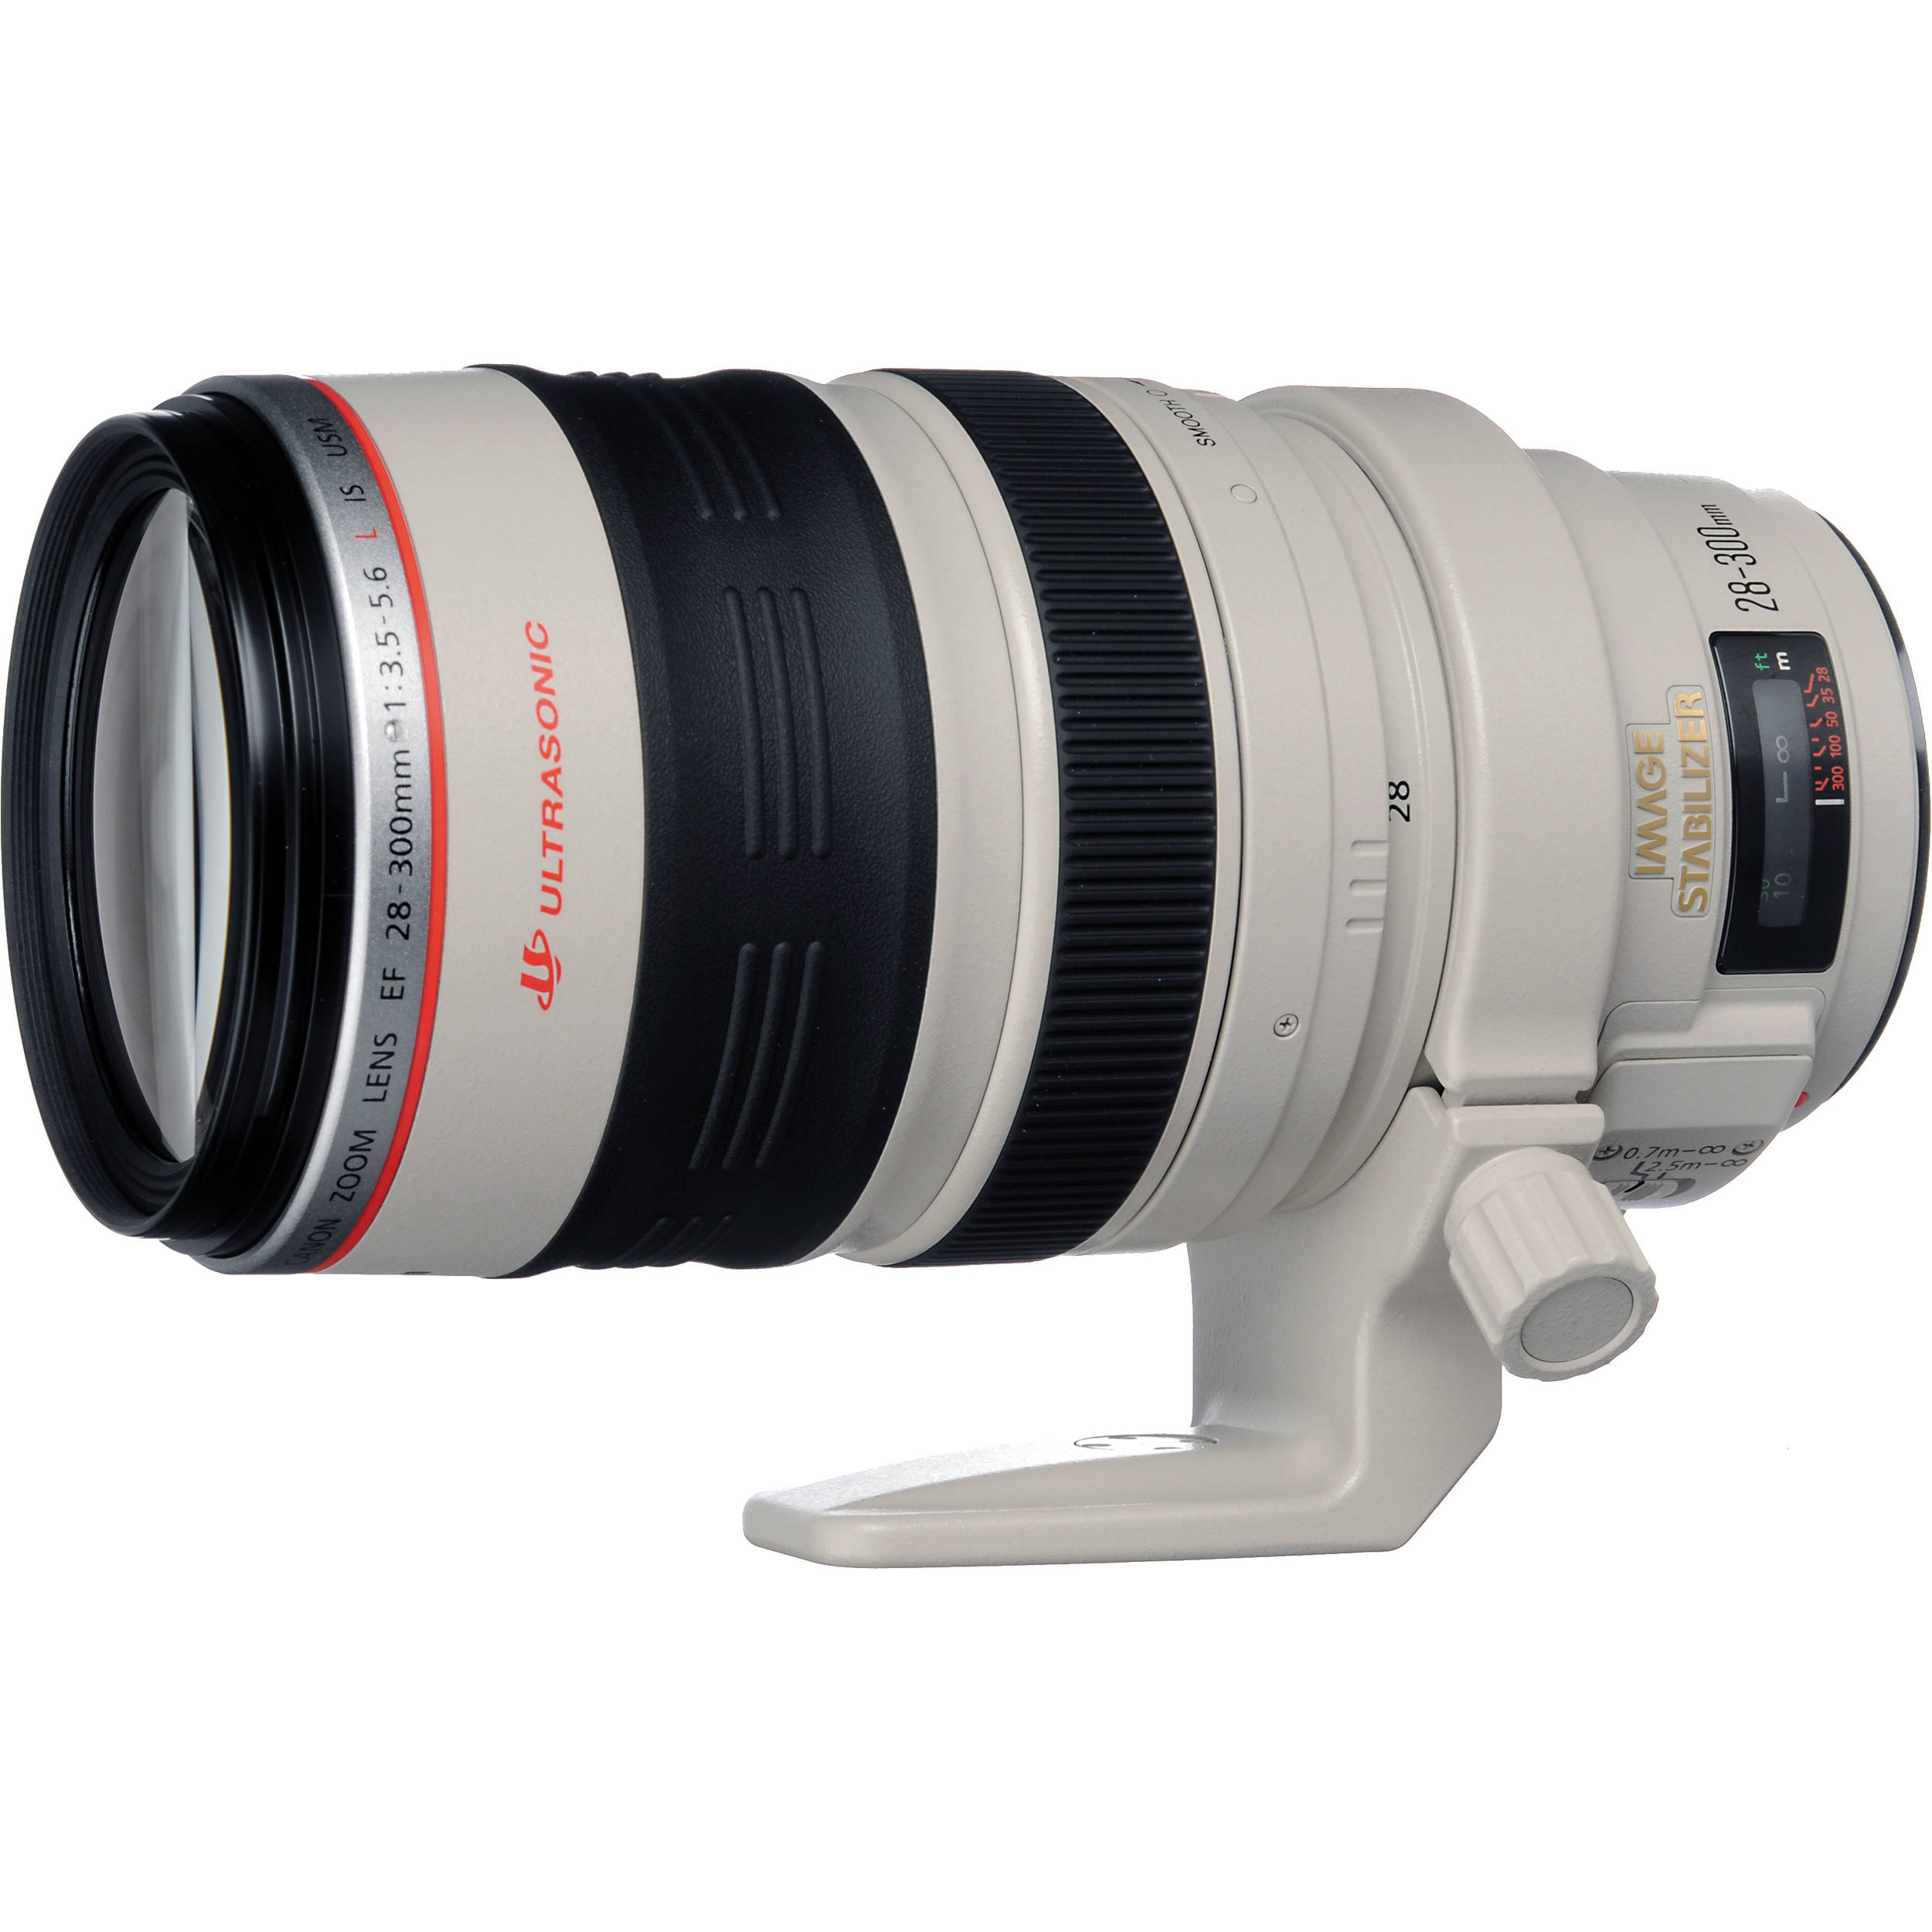 Canon Ef 28-300Mm F/3.5-5.6L Is Usm Lens 9322A002 B&Amp;H Photo Video